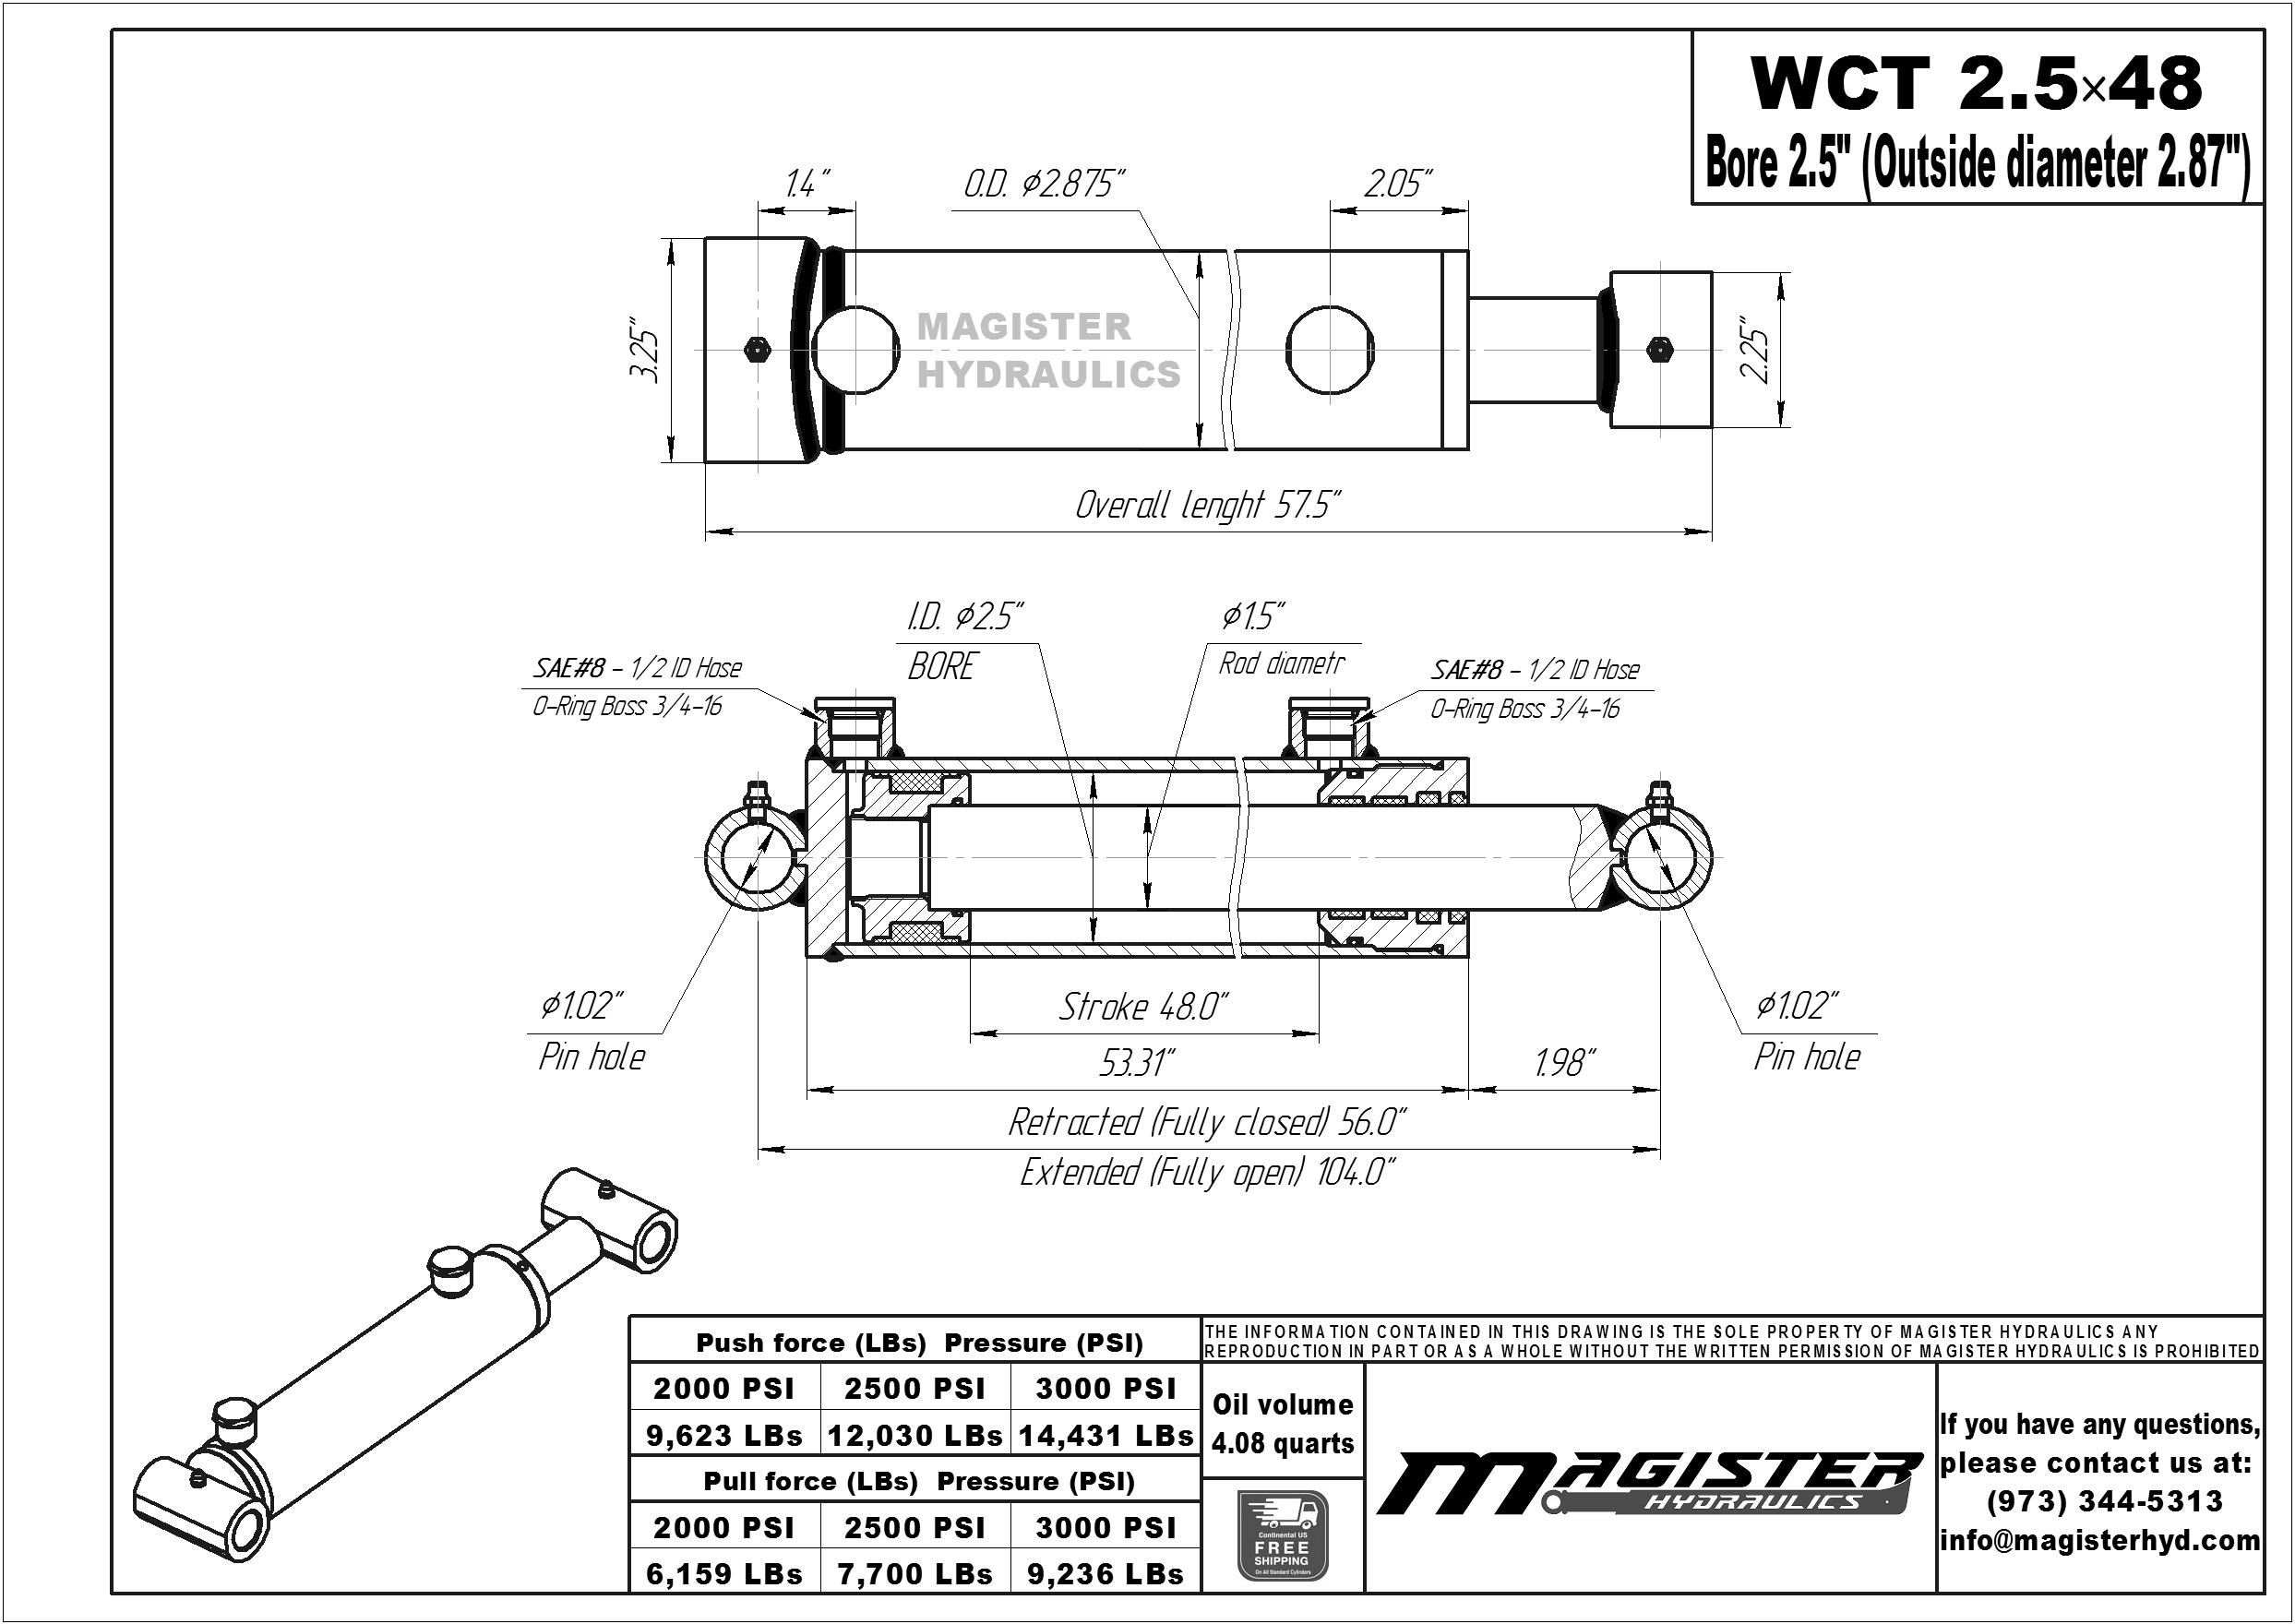 2.5 bore x 48 stroke hydraulic cylinder, welded cross tube double acting cylinder | Magister Hydraulics